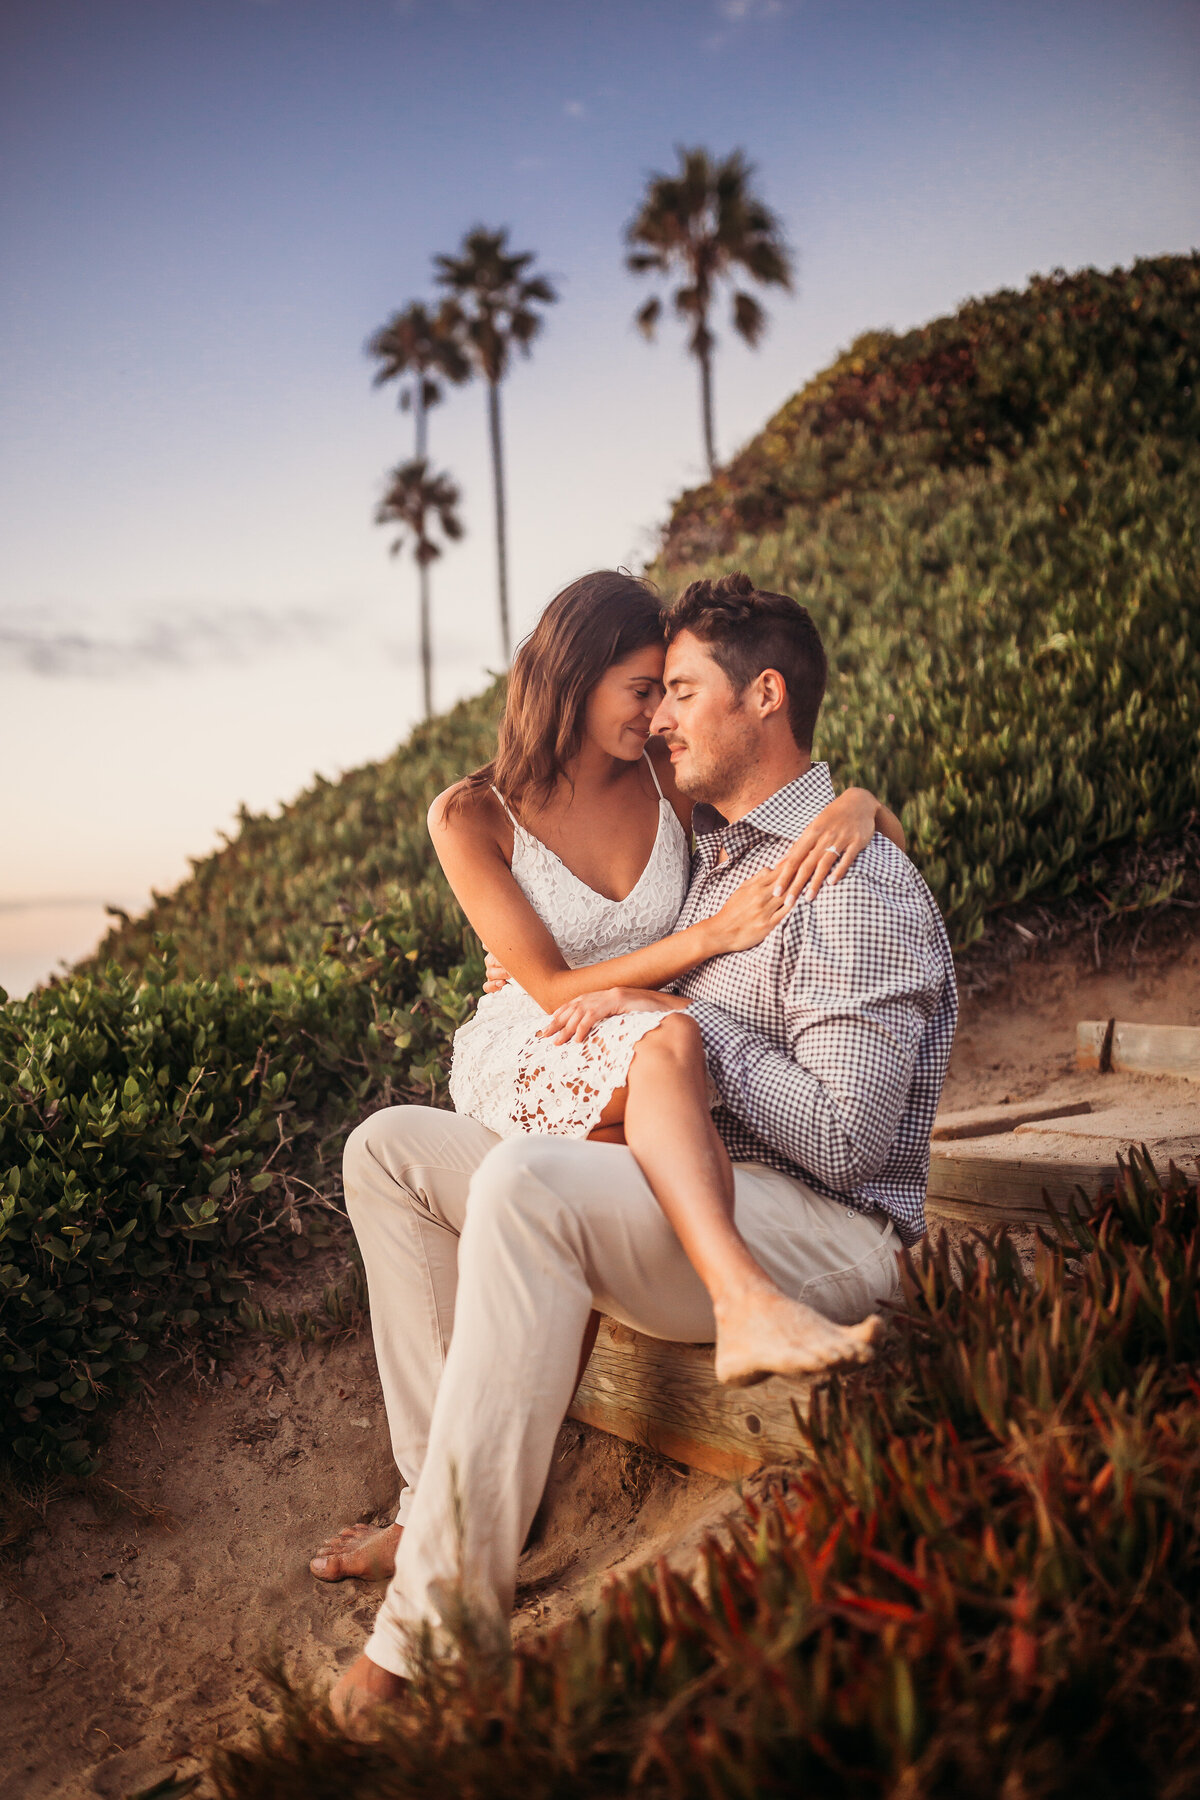 san-diego-california-engagement-photographer-robin-litrenta-photography-31